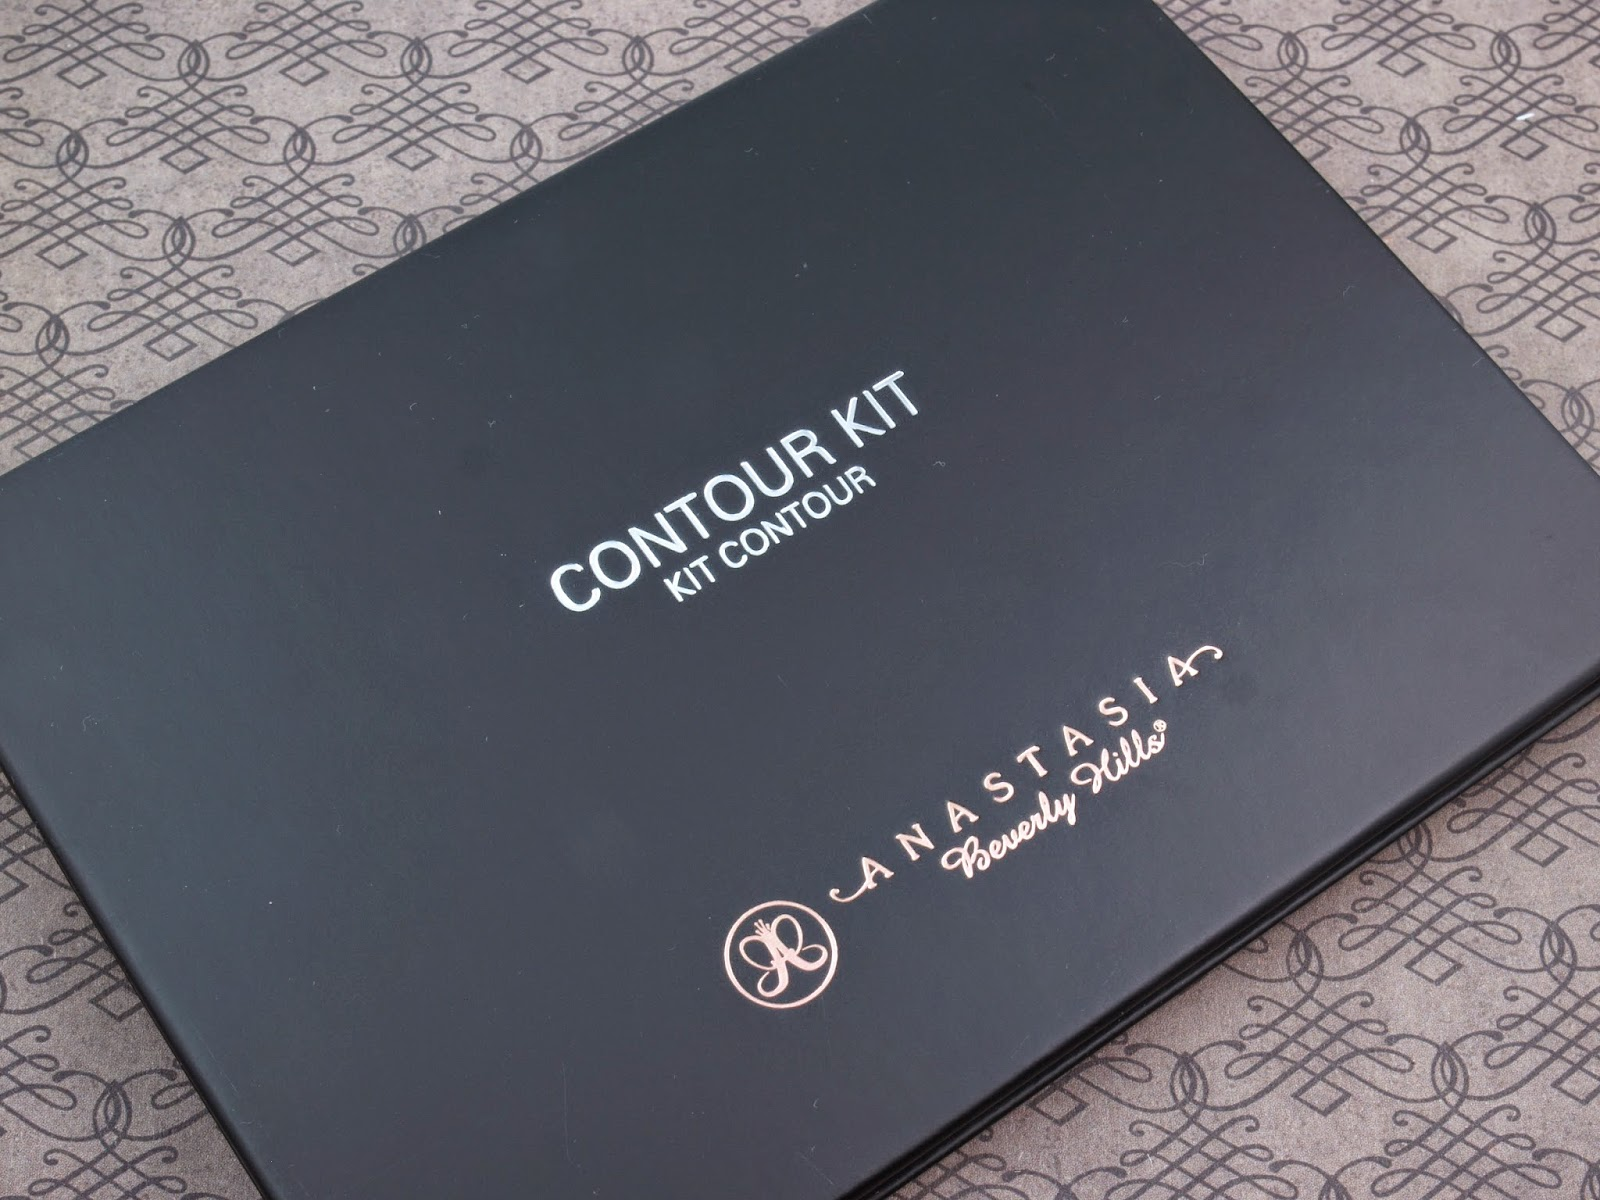 Anastasia Beverly Hills Contour Kit: Review and Swatches